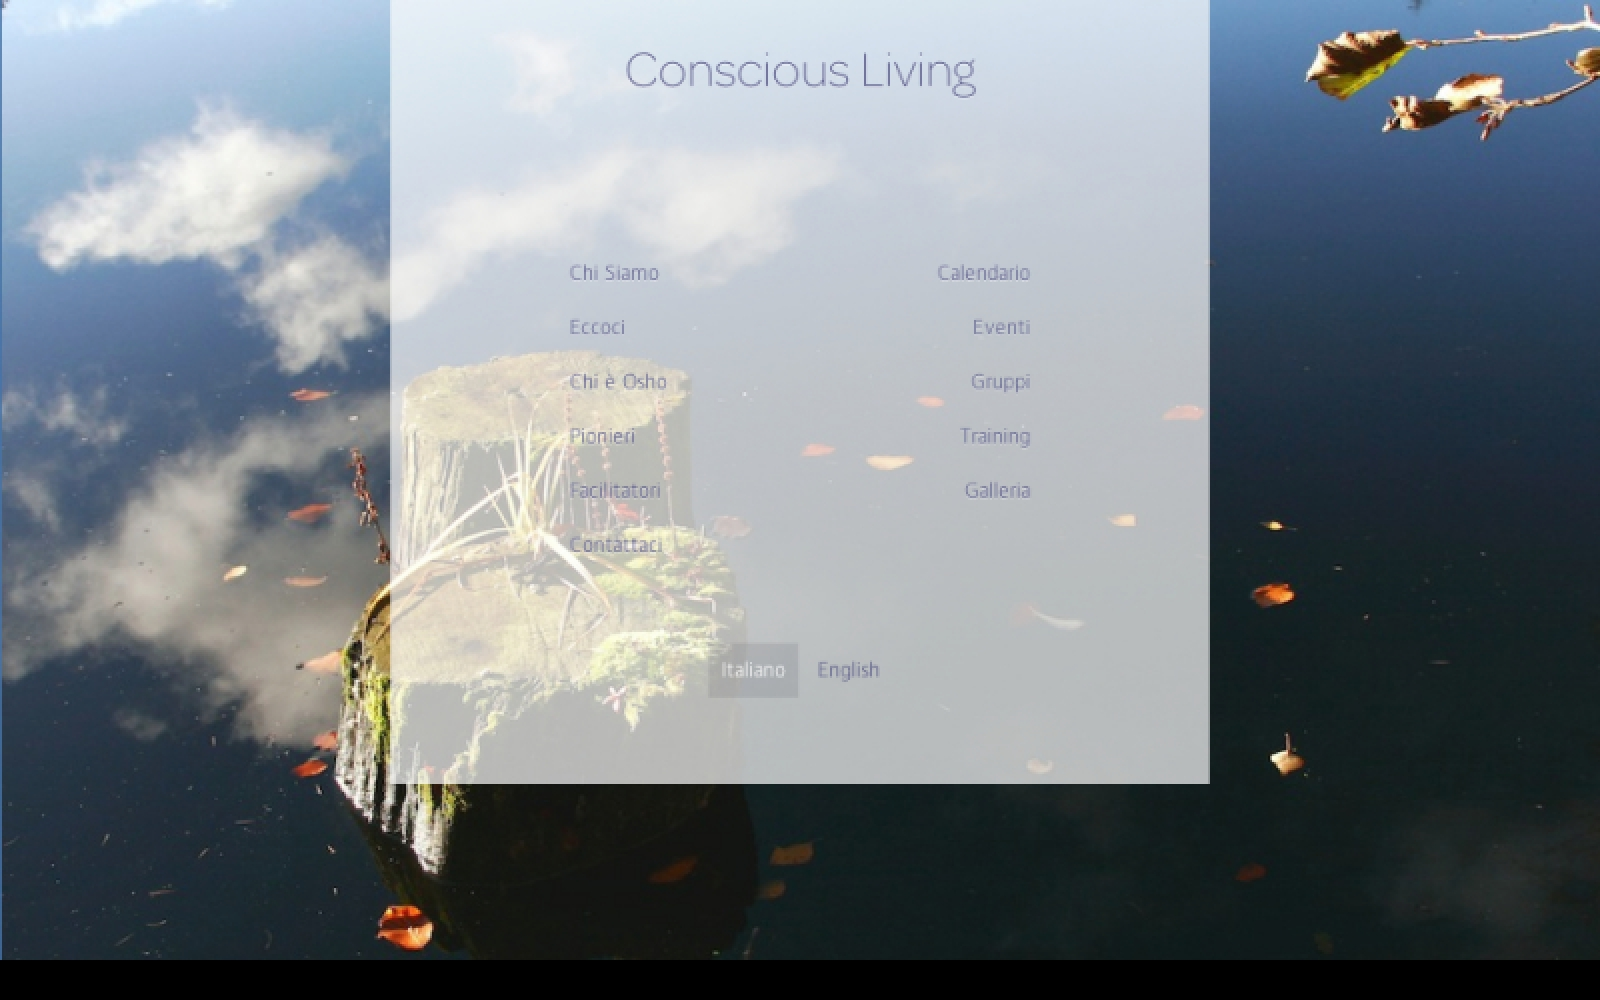 Conscious Living (home page)